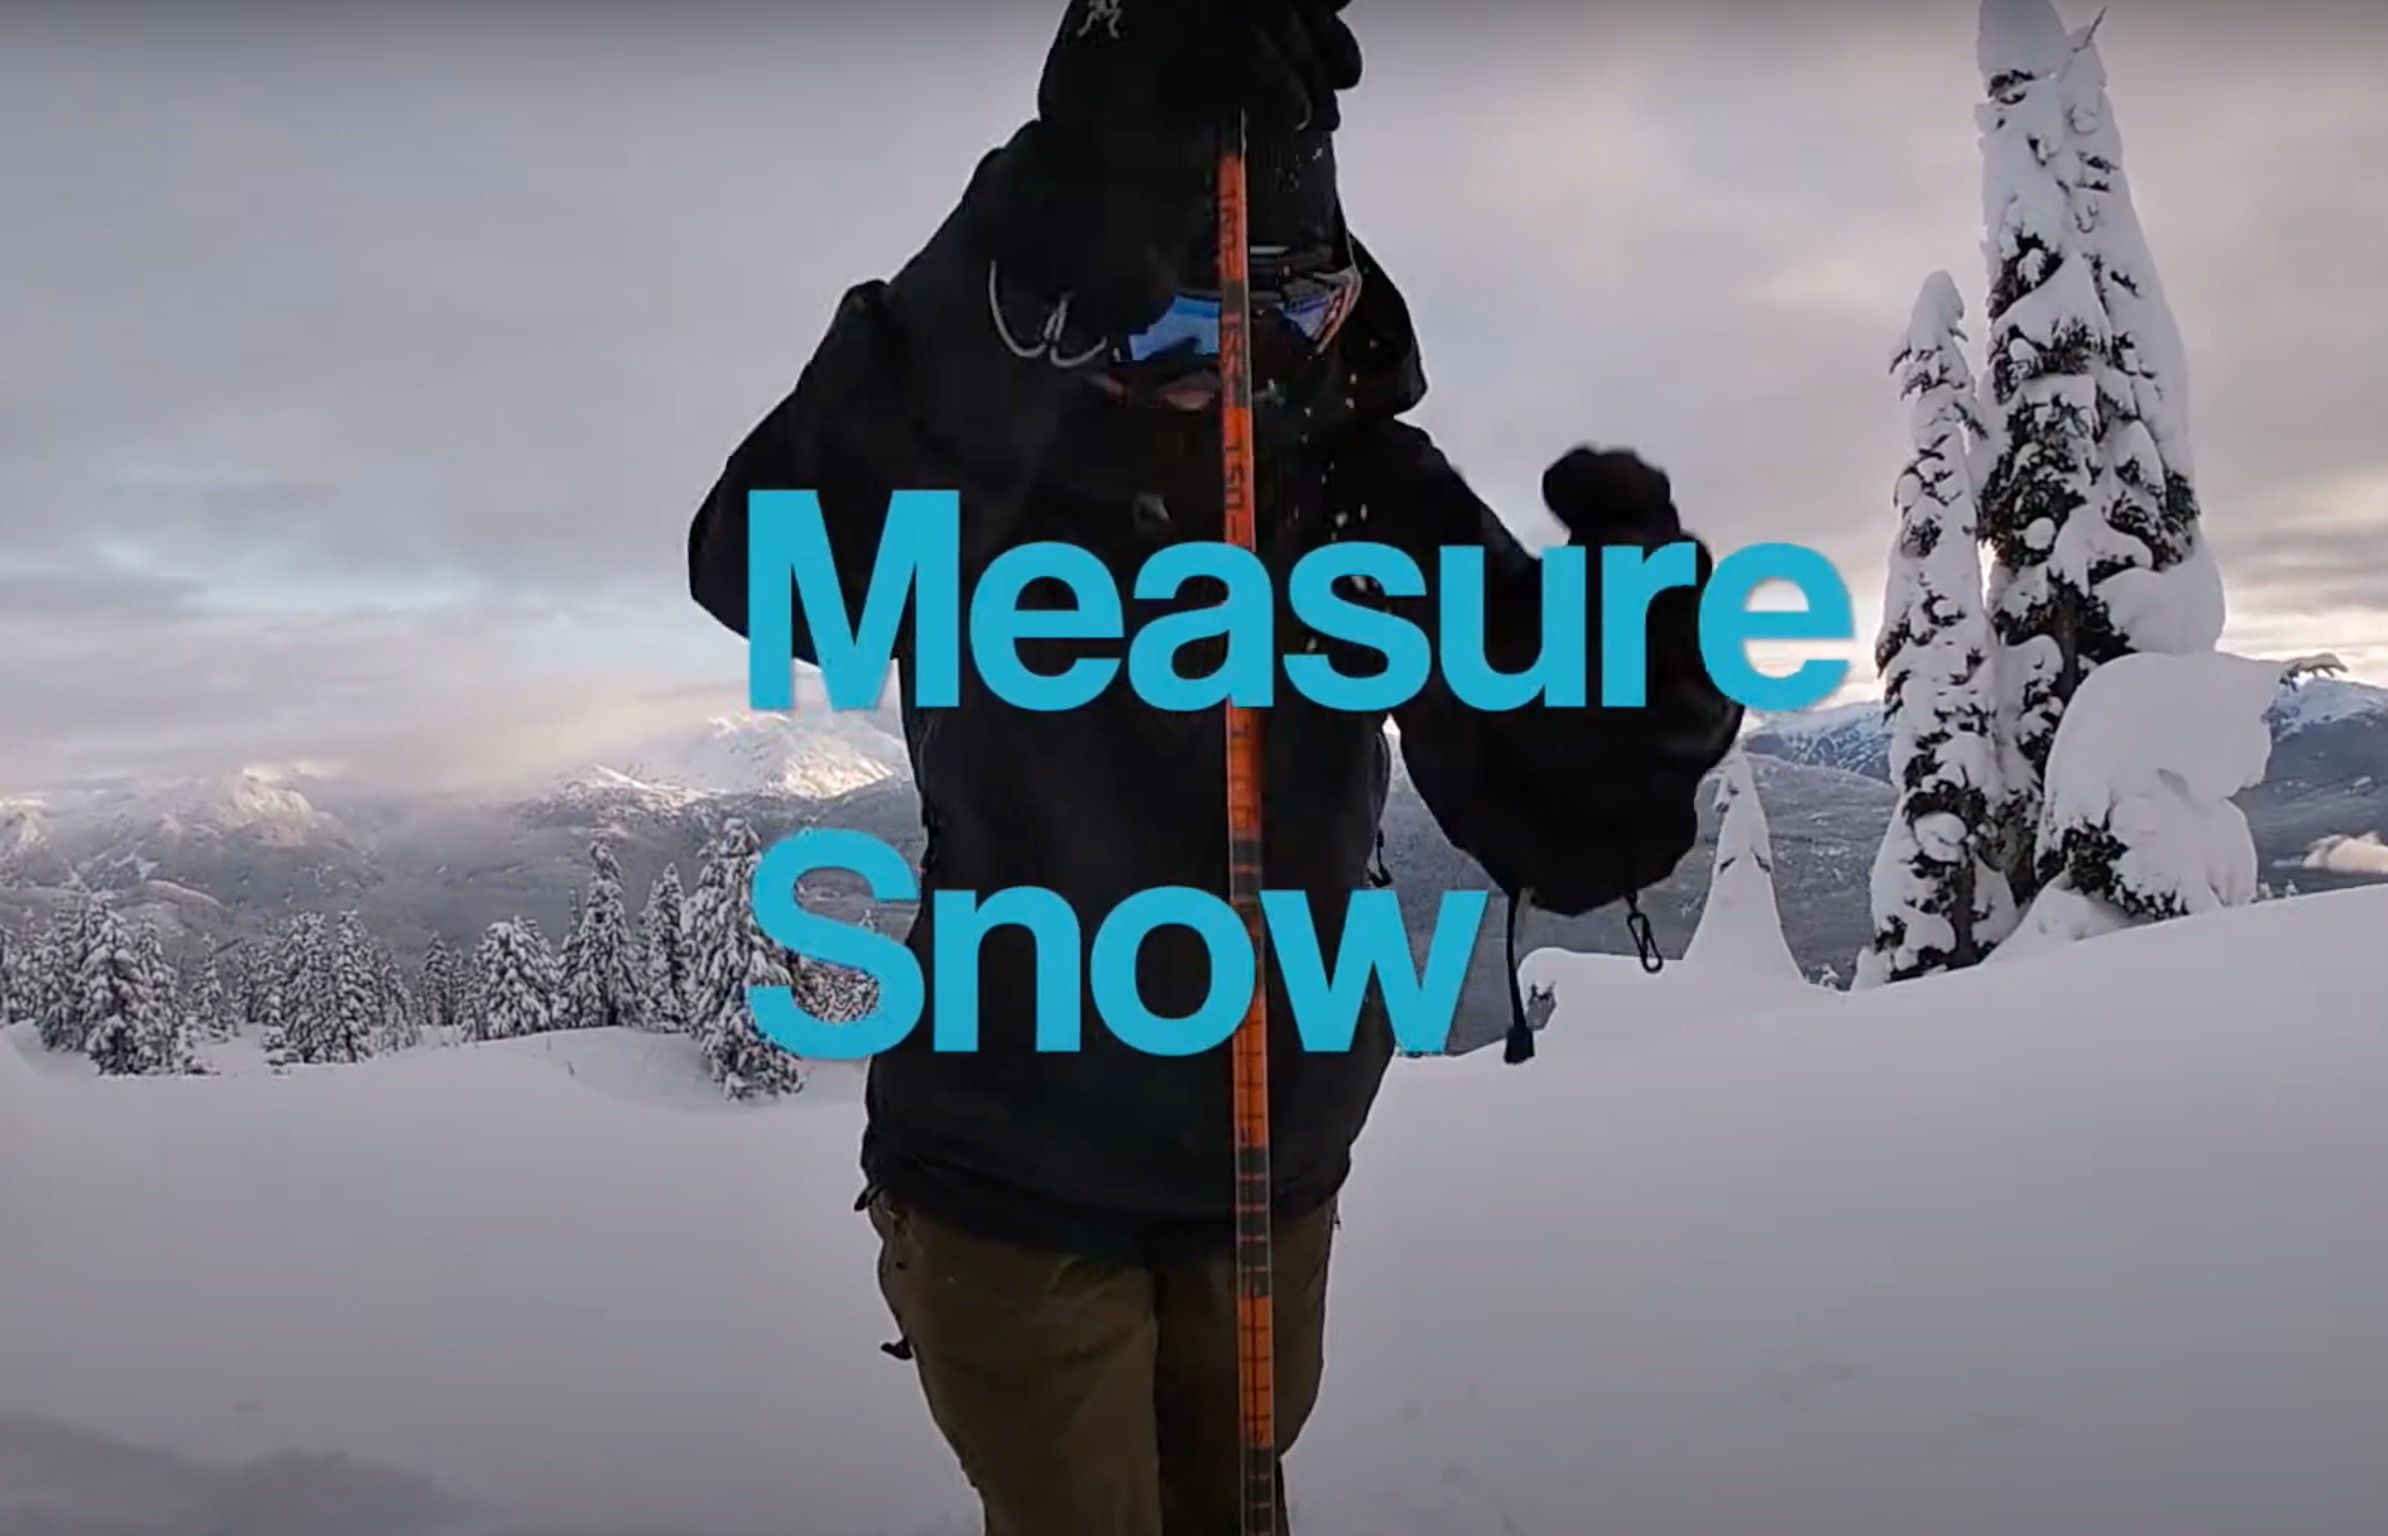 Scientists Asking Backcountry Skiers For Help Taking Snow Measurements